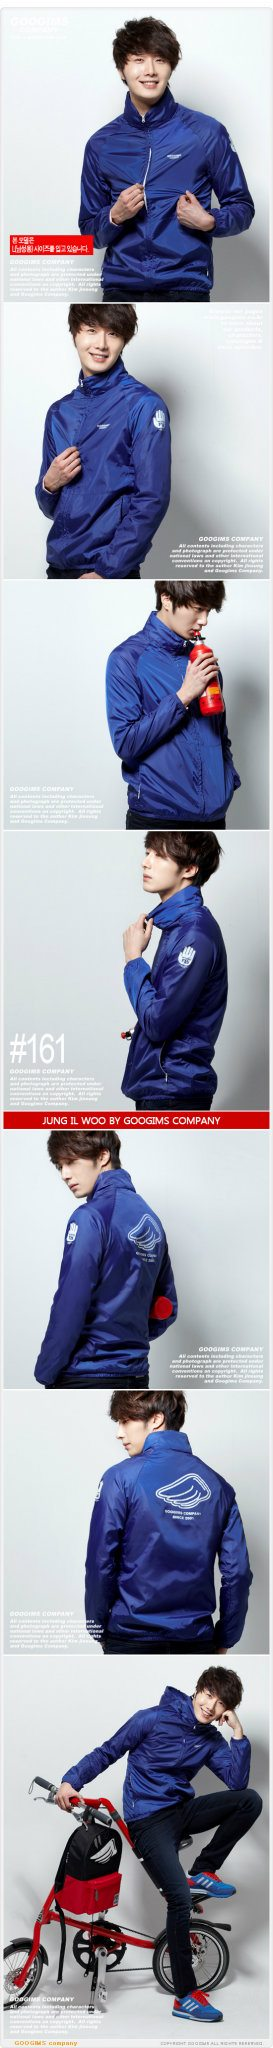 2011 10 Jung II-woo for Googims. Part 100047